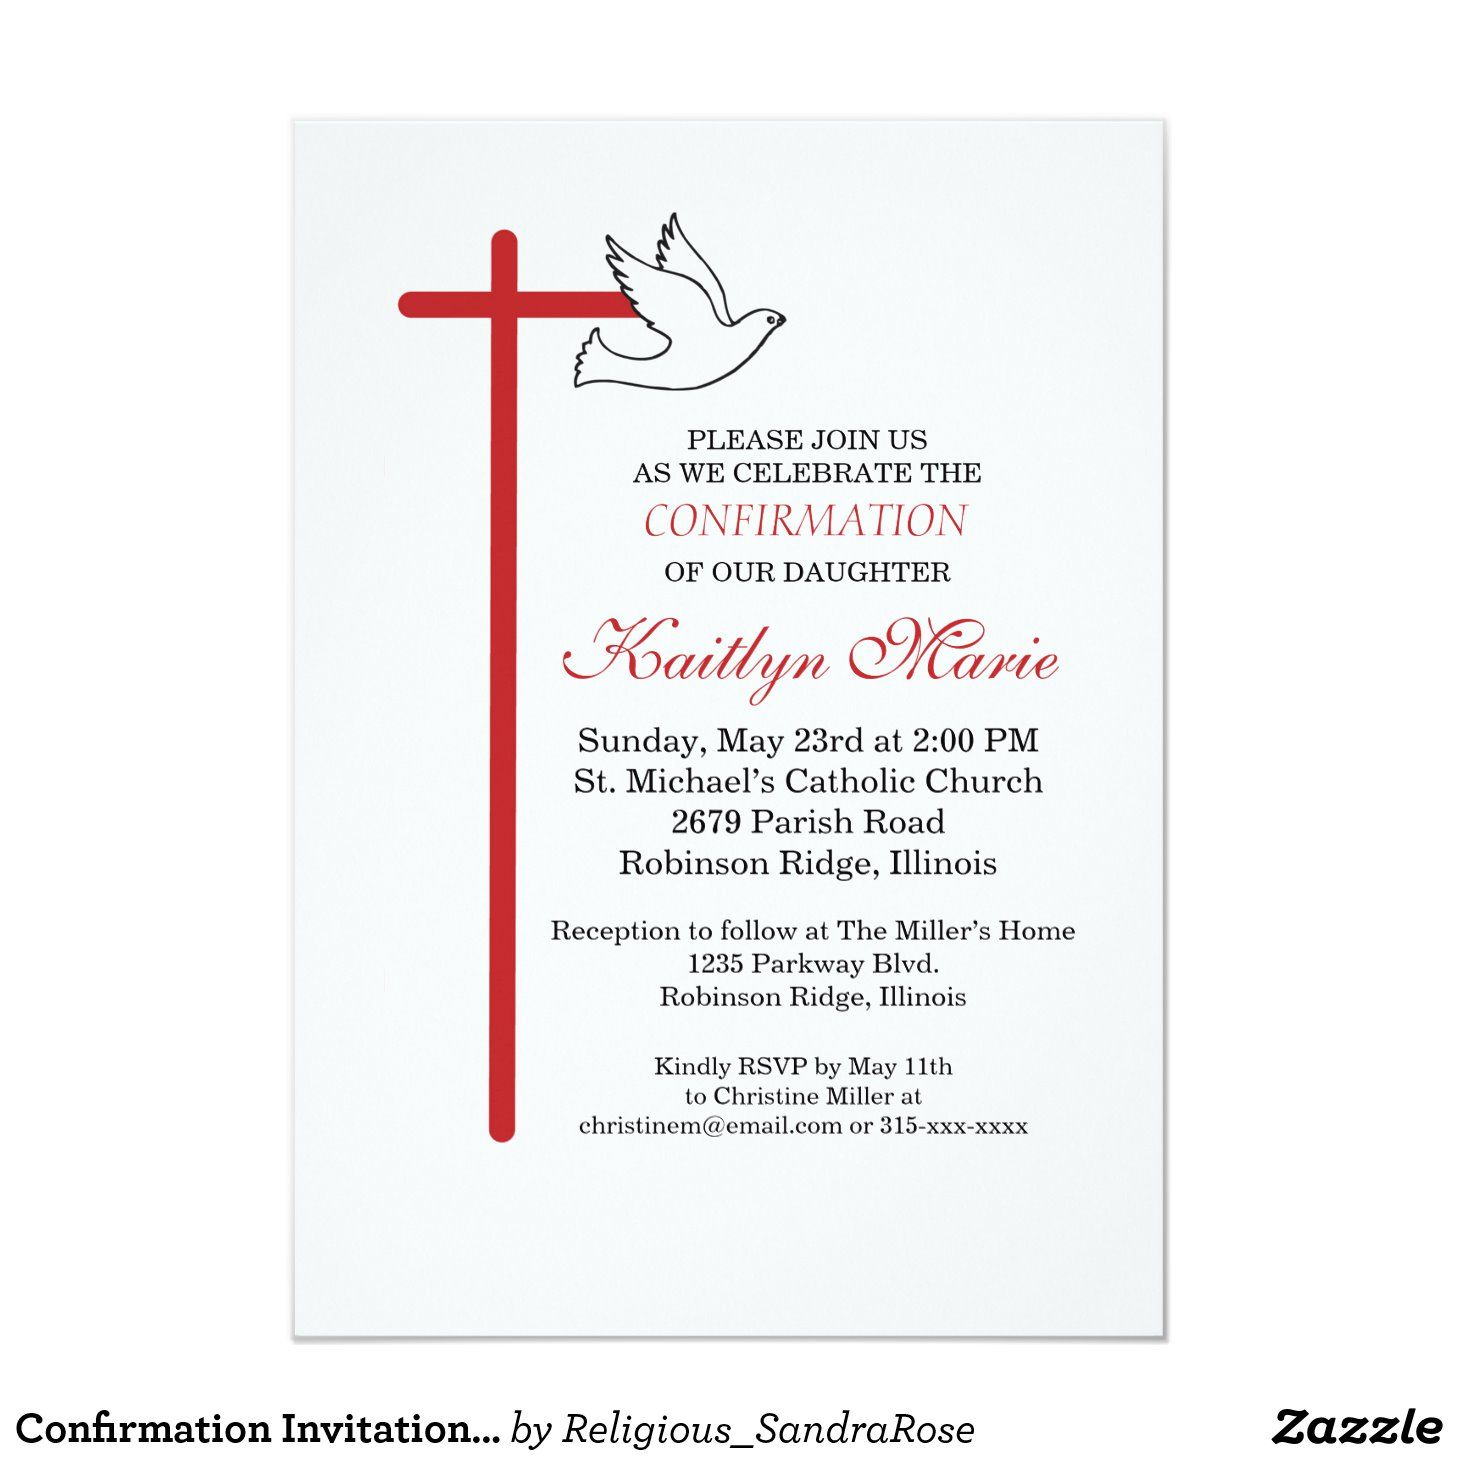 Confirmation Invitation Red Cross Amp Dove On White